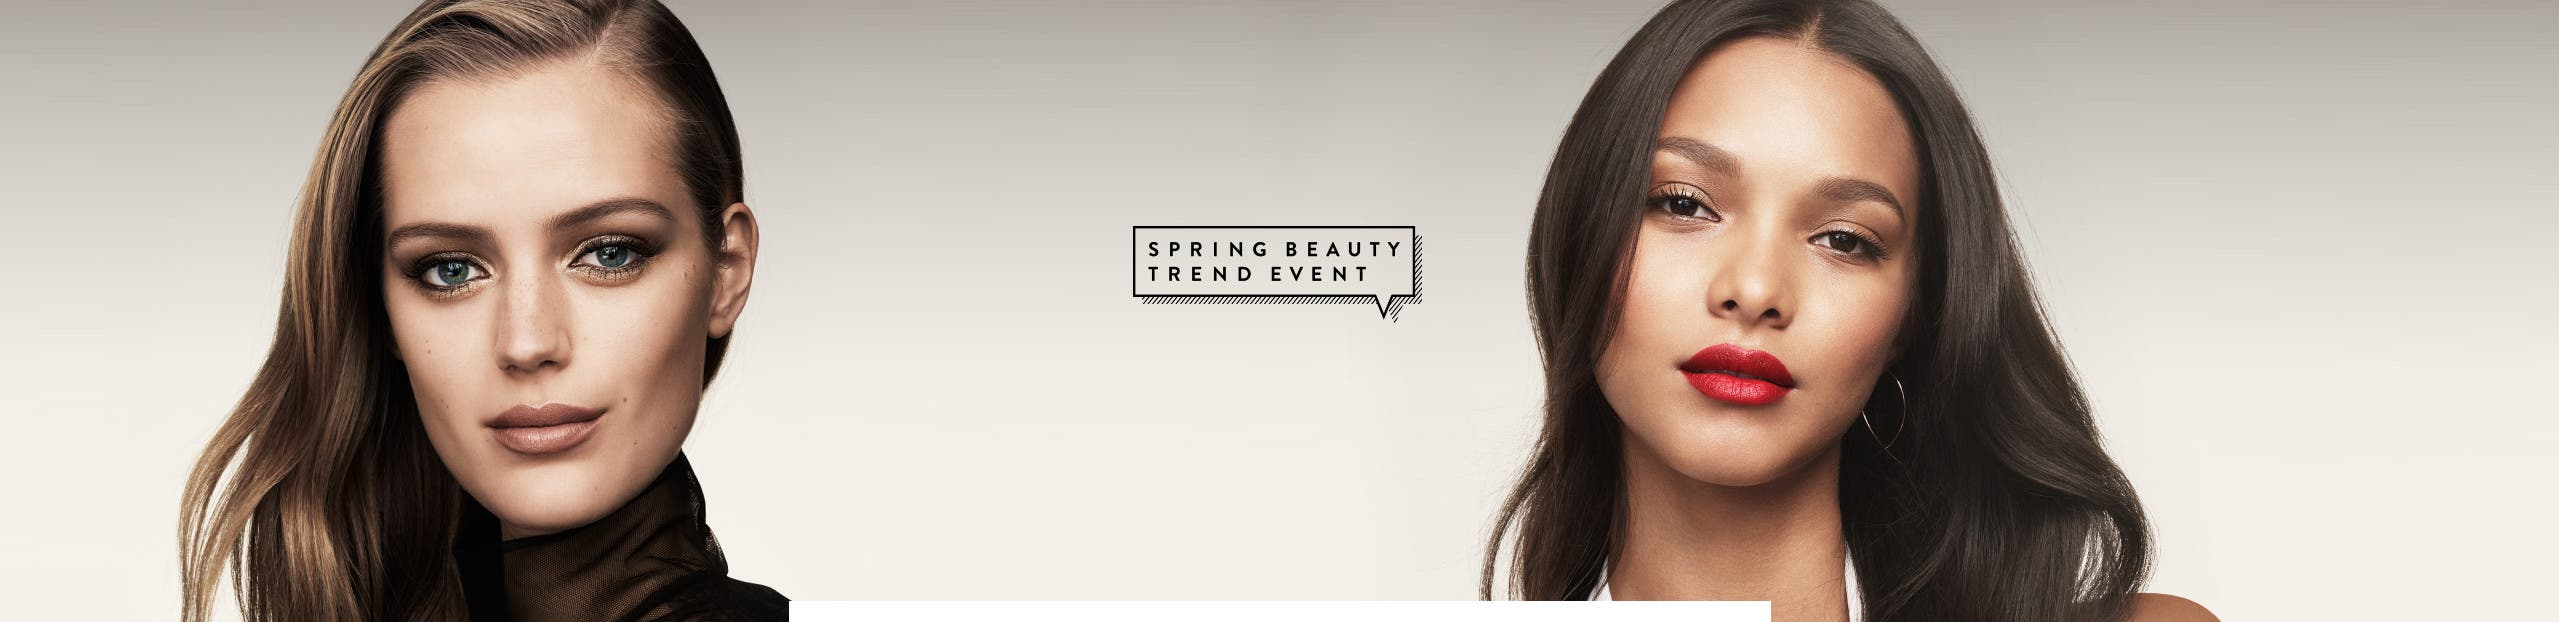 Spring beauty trend event.